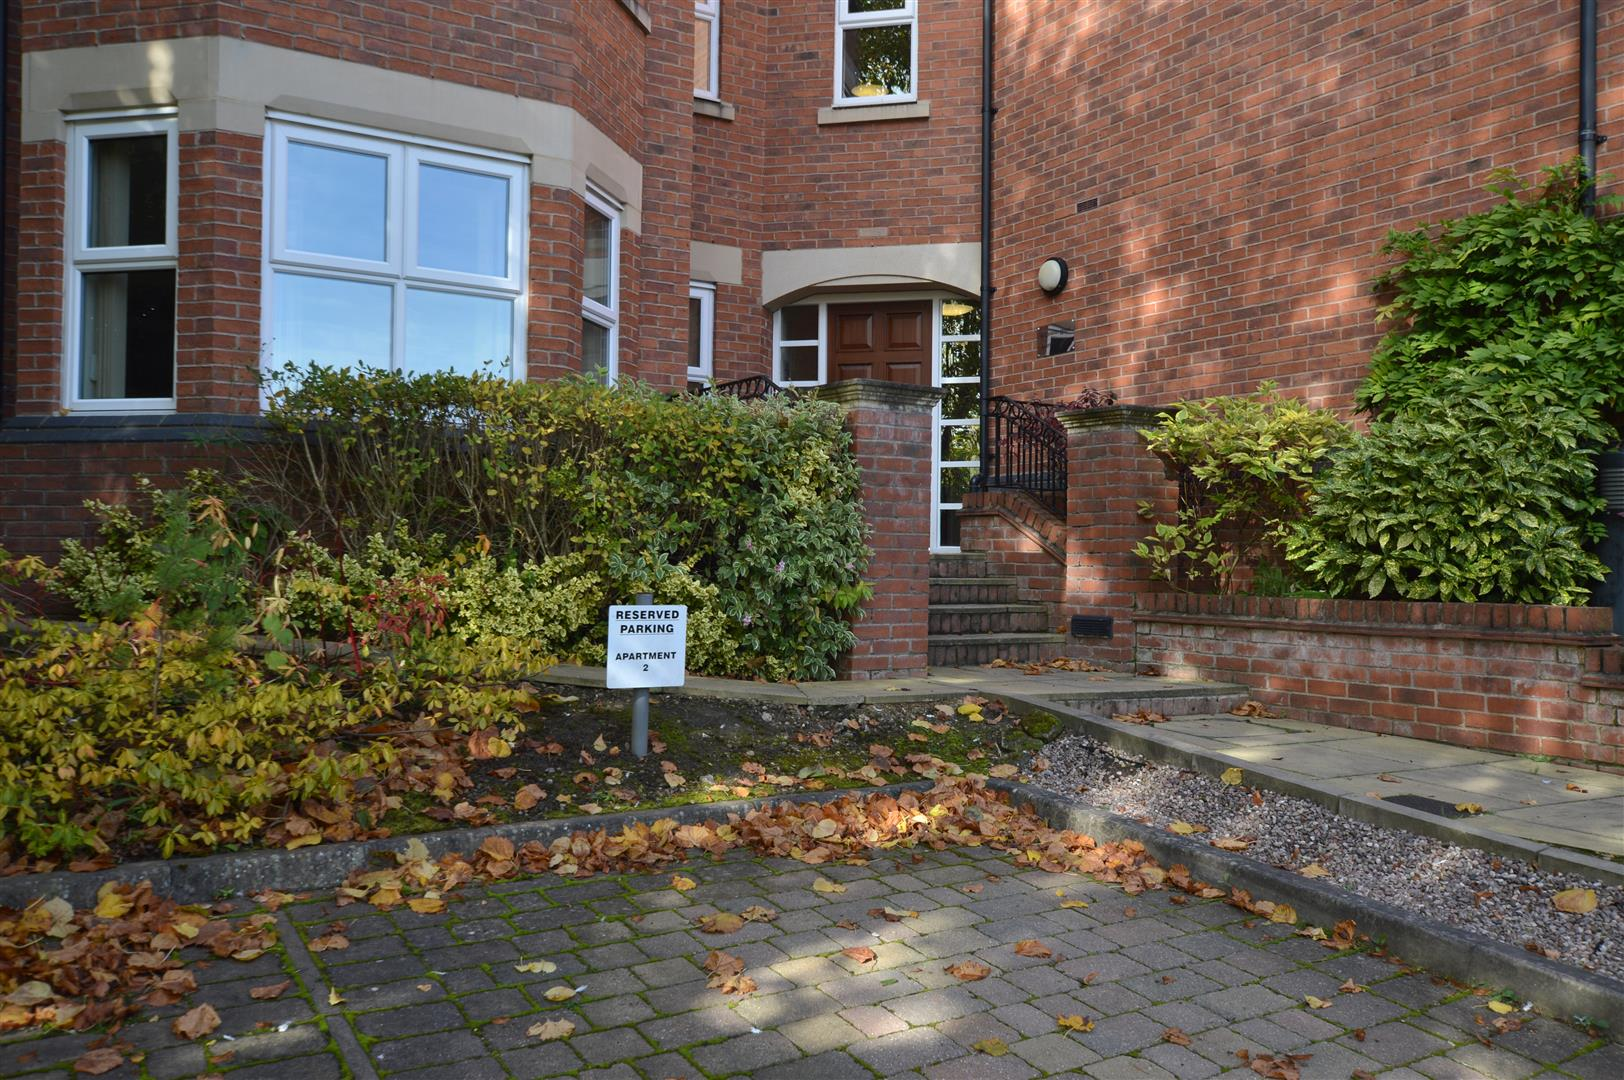 2 Bedroom Apartment For Sale In Derby